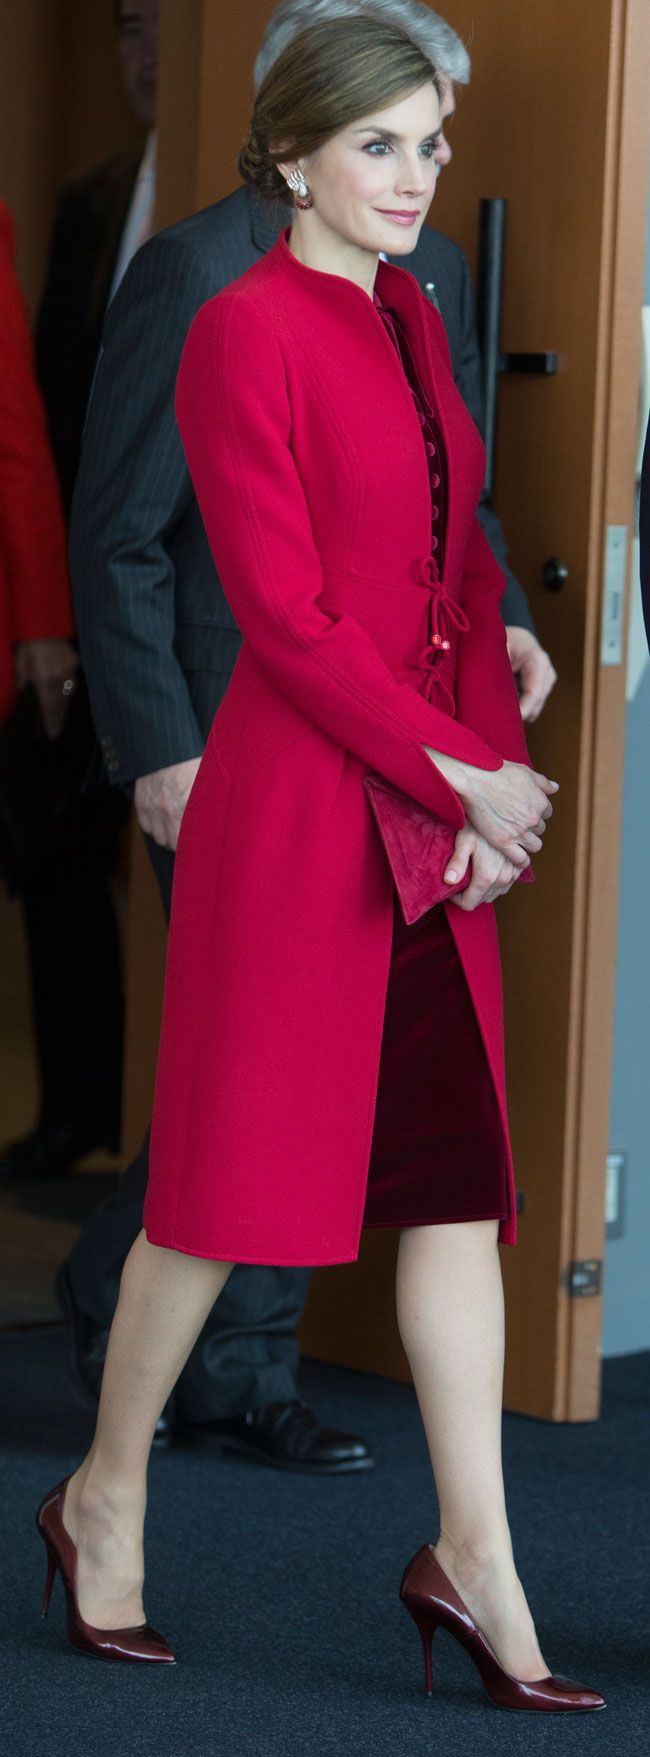 "drubles-bestgum1:  ""Queen Letizia of Spain in Japan. April 5, 2017  """